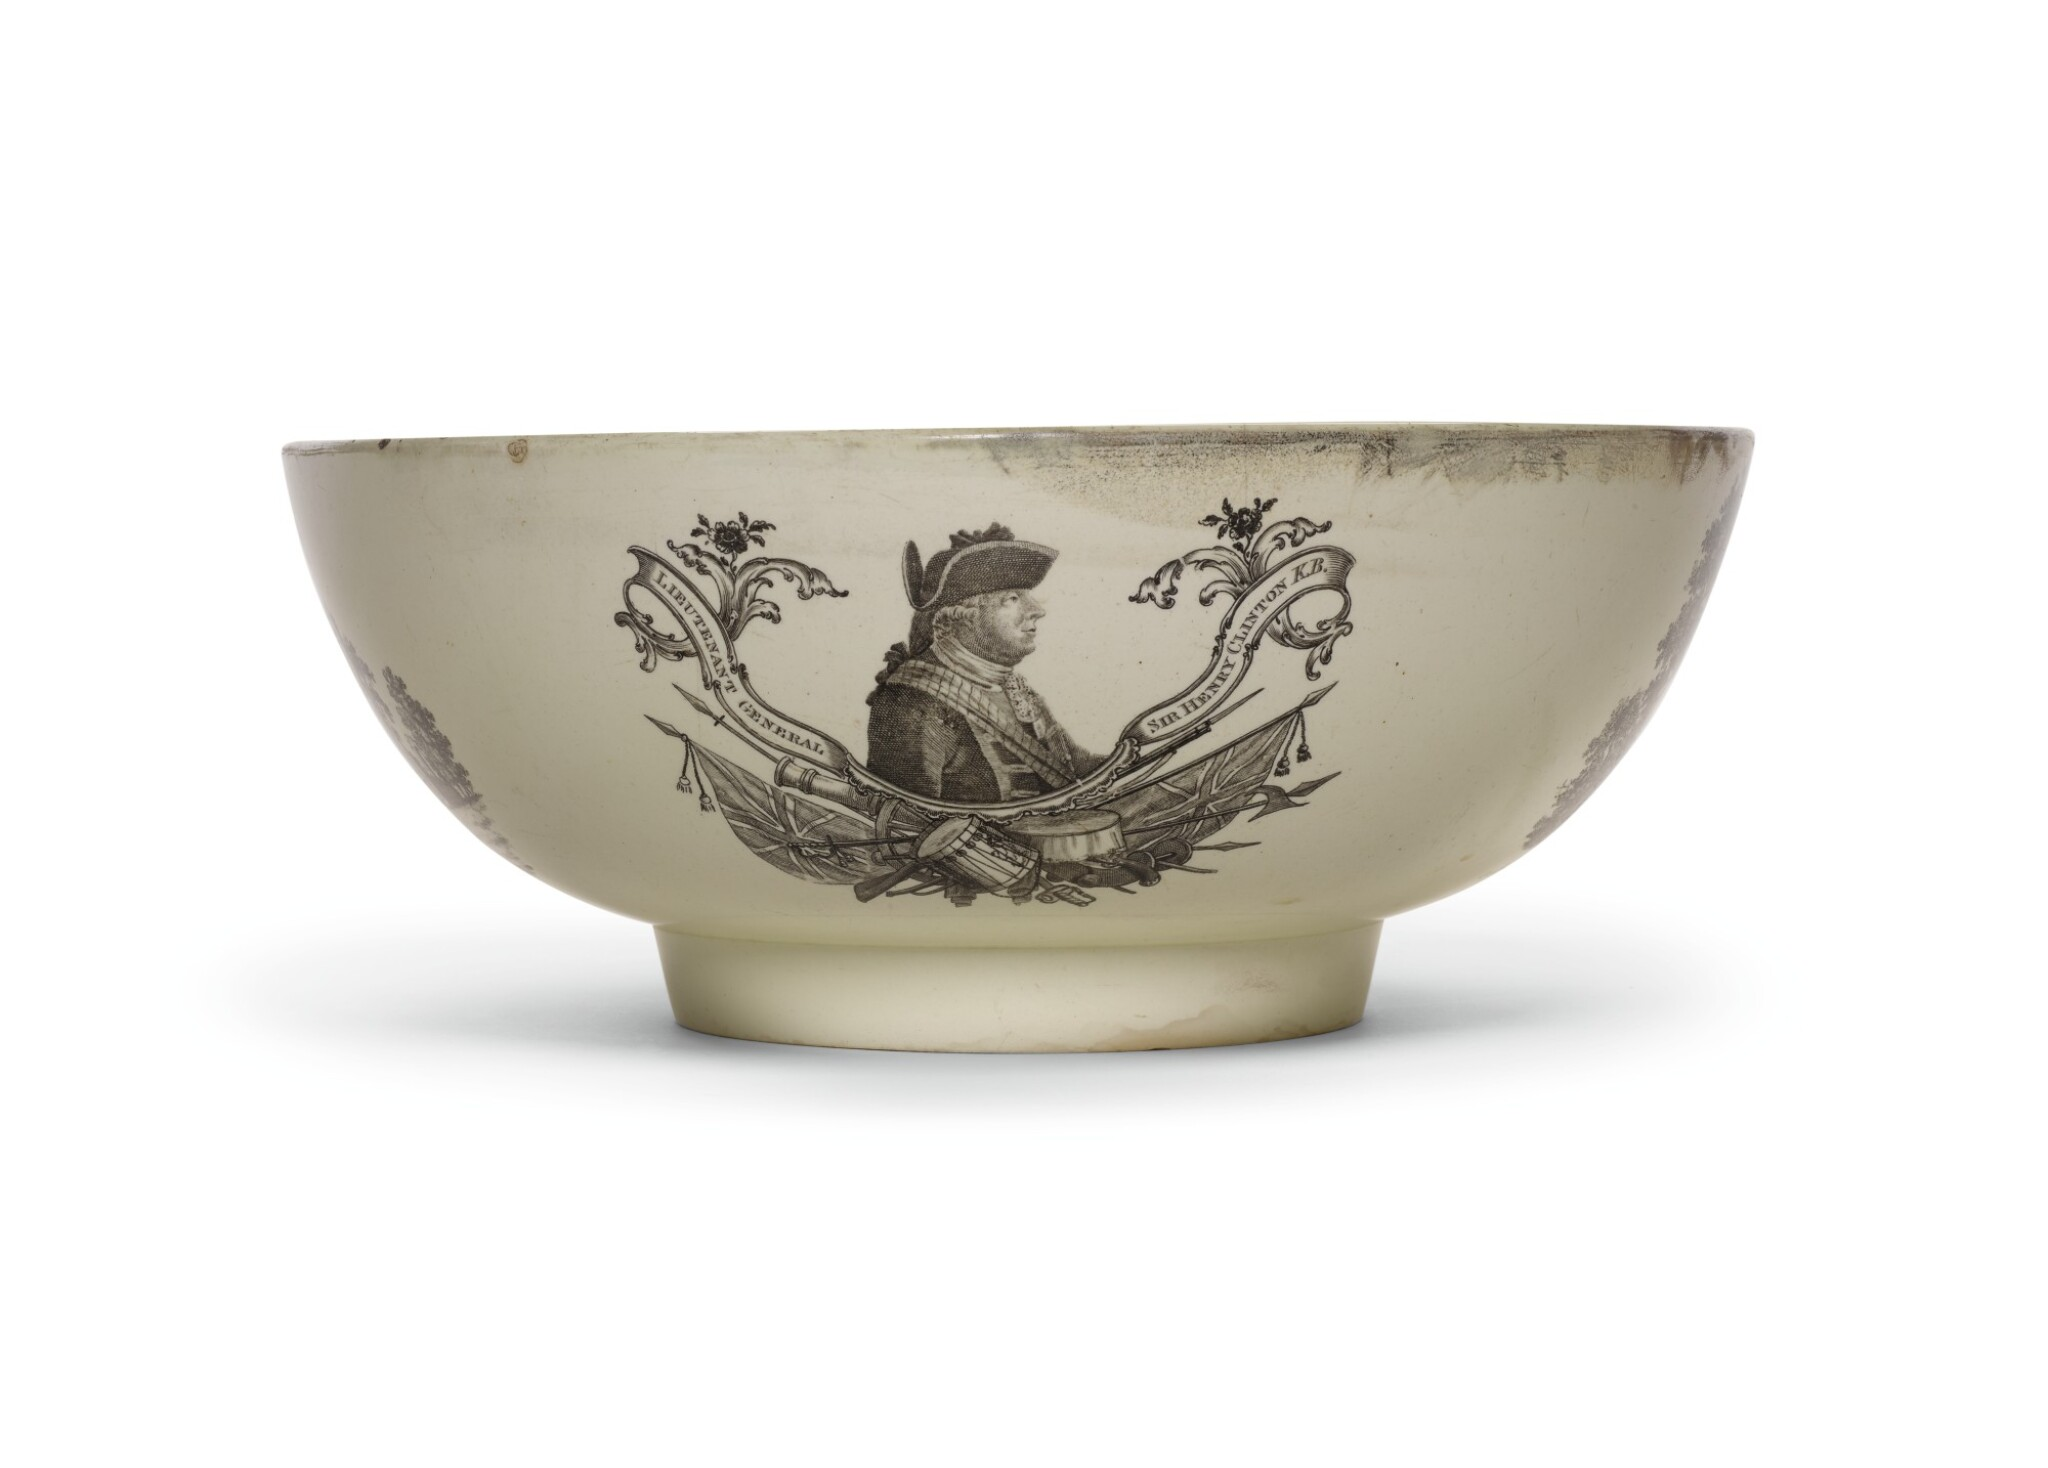 View full screen - View 1 of Lot 136. A Wedgwood creamware transfer-printed commemorative punch bowl, late 18th century.